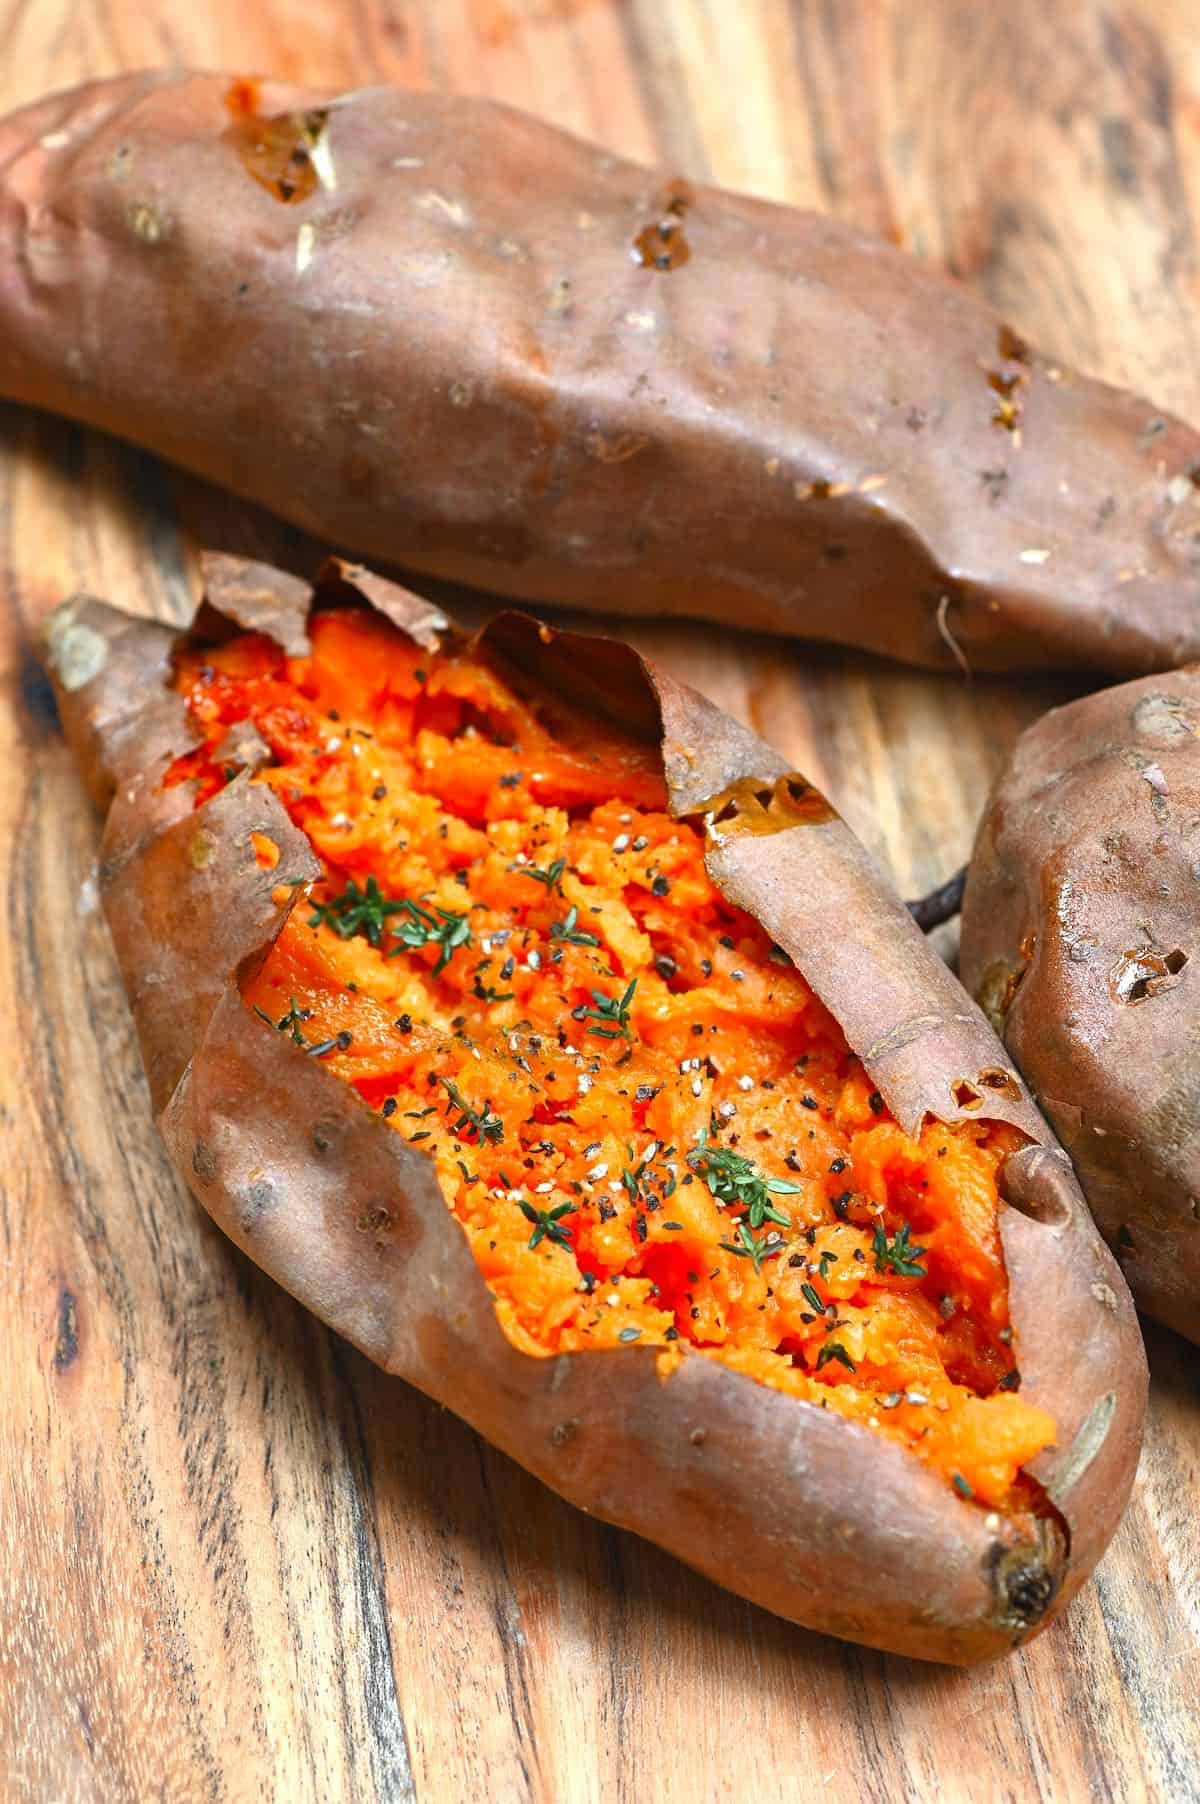 Baked sweet potatoes with one of them open and topped with thyme